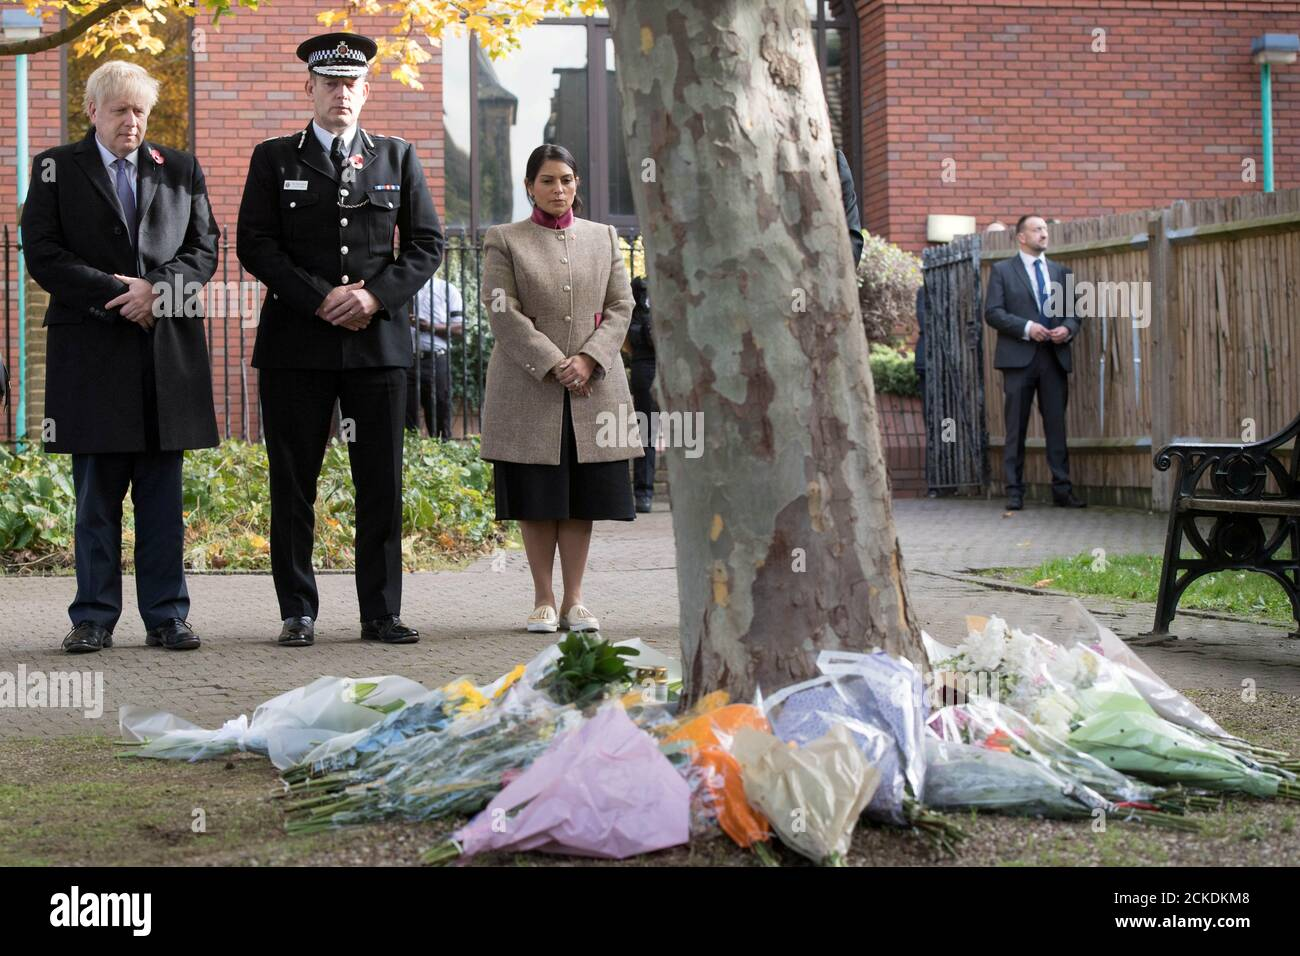 Prime Minister Boris Johnson stands with the Chief Constable of Essex Police, Ben-Julian Harrington, and Home Secretary Priti Patel, after laying flowers during a visit to Thurrock Council Offices in Grays, Britain, October 28, 2019. Stefan Rousseau/Pool via REUTERS Stock Photo